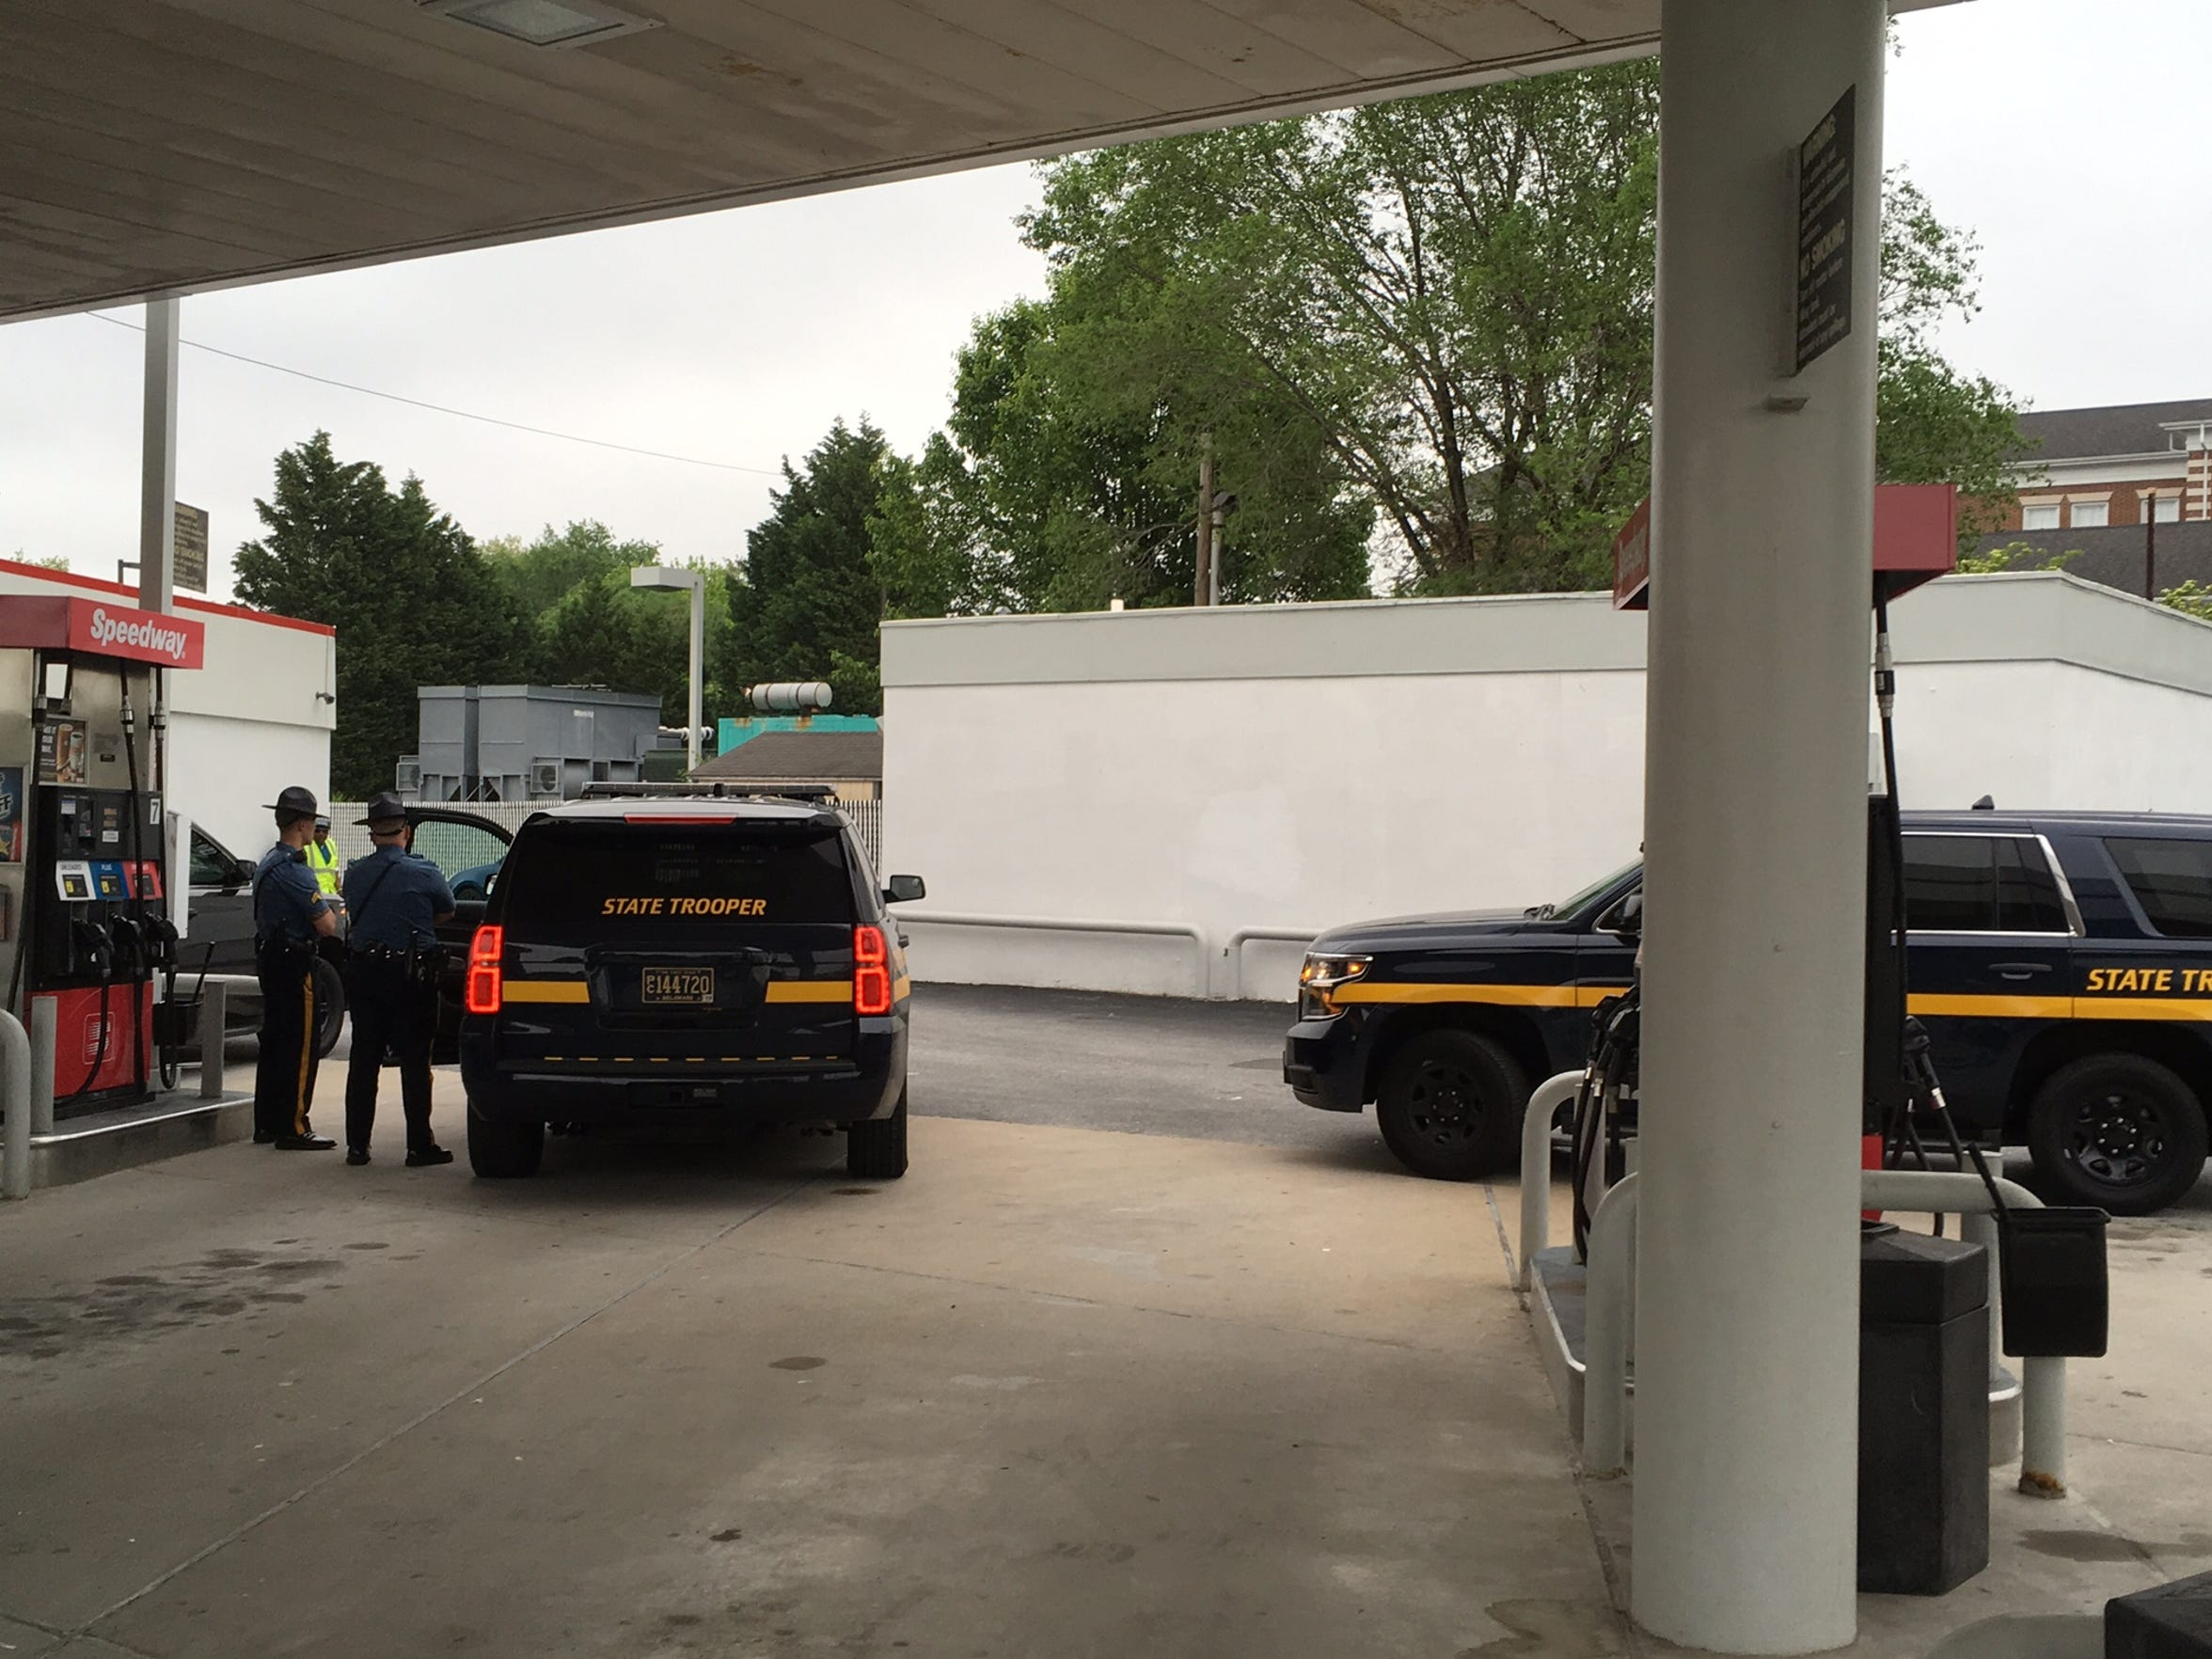 State police investigating a body found in a gas station bathroom near New Castle.